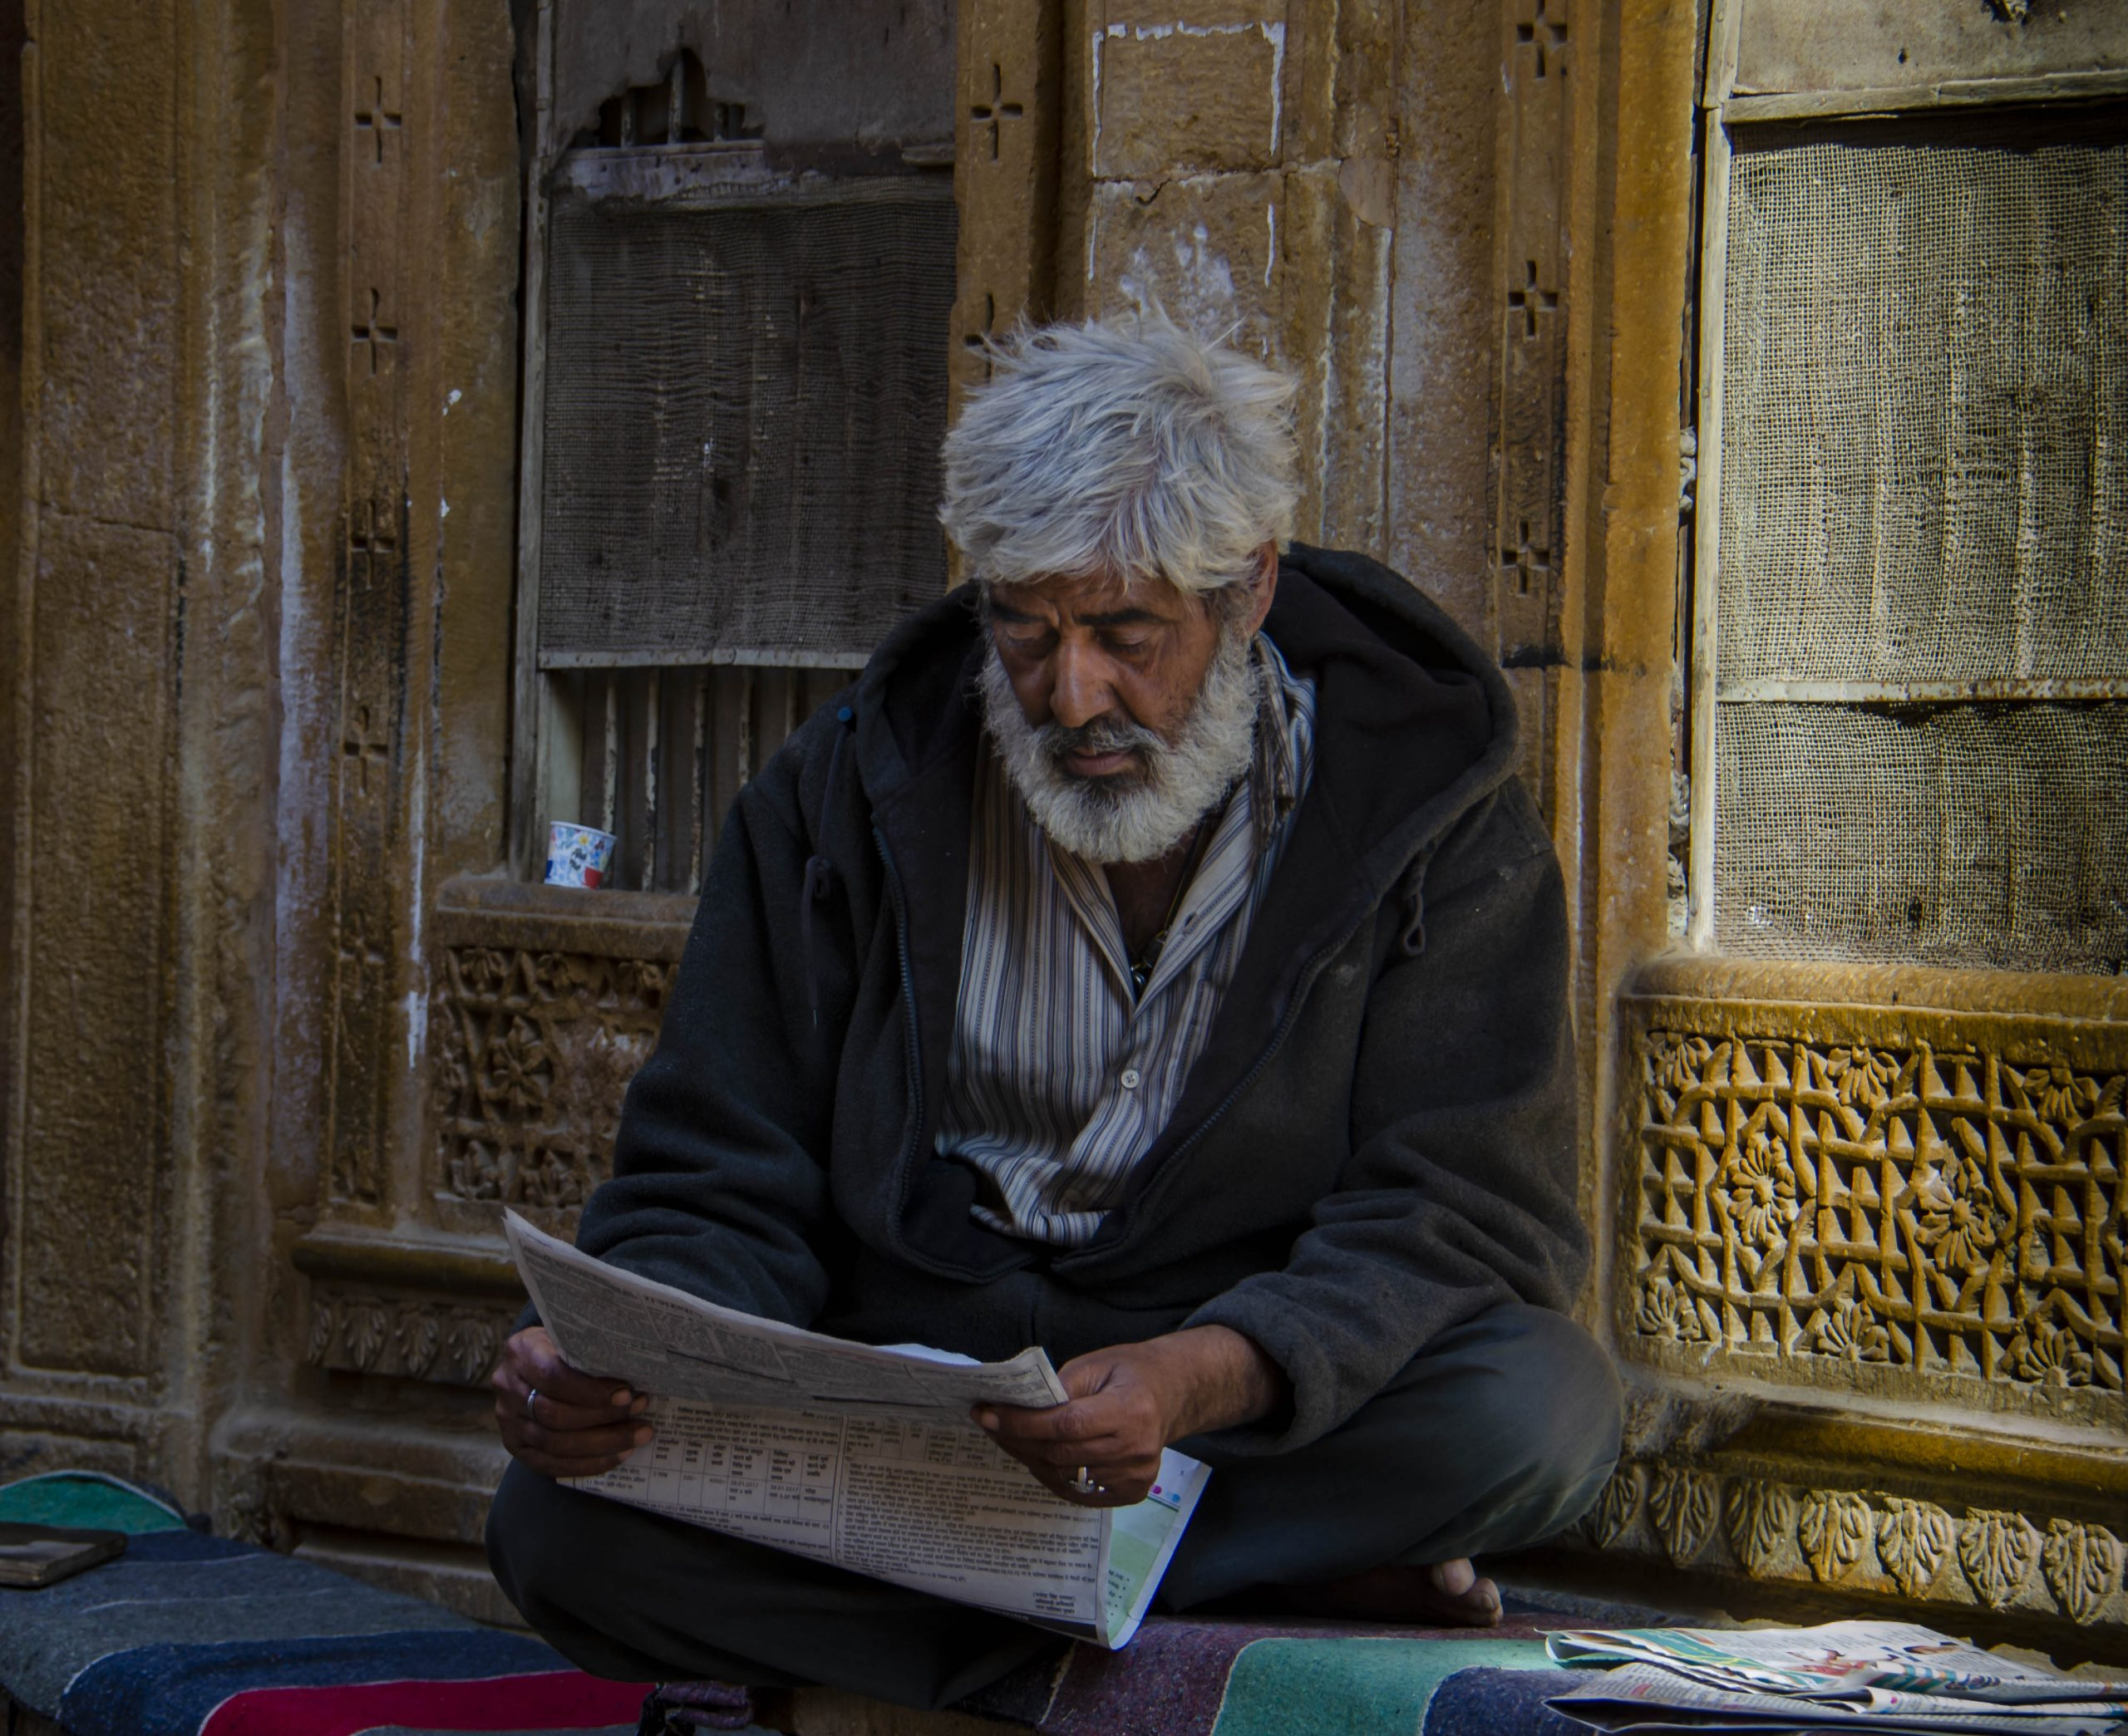 An old man reading newspaper